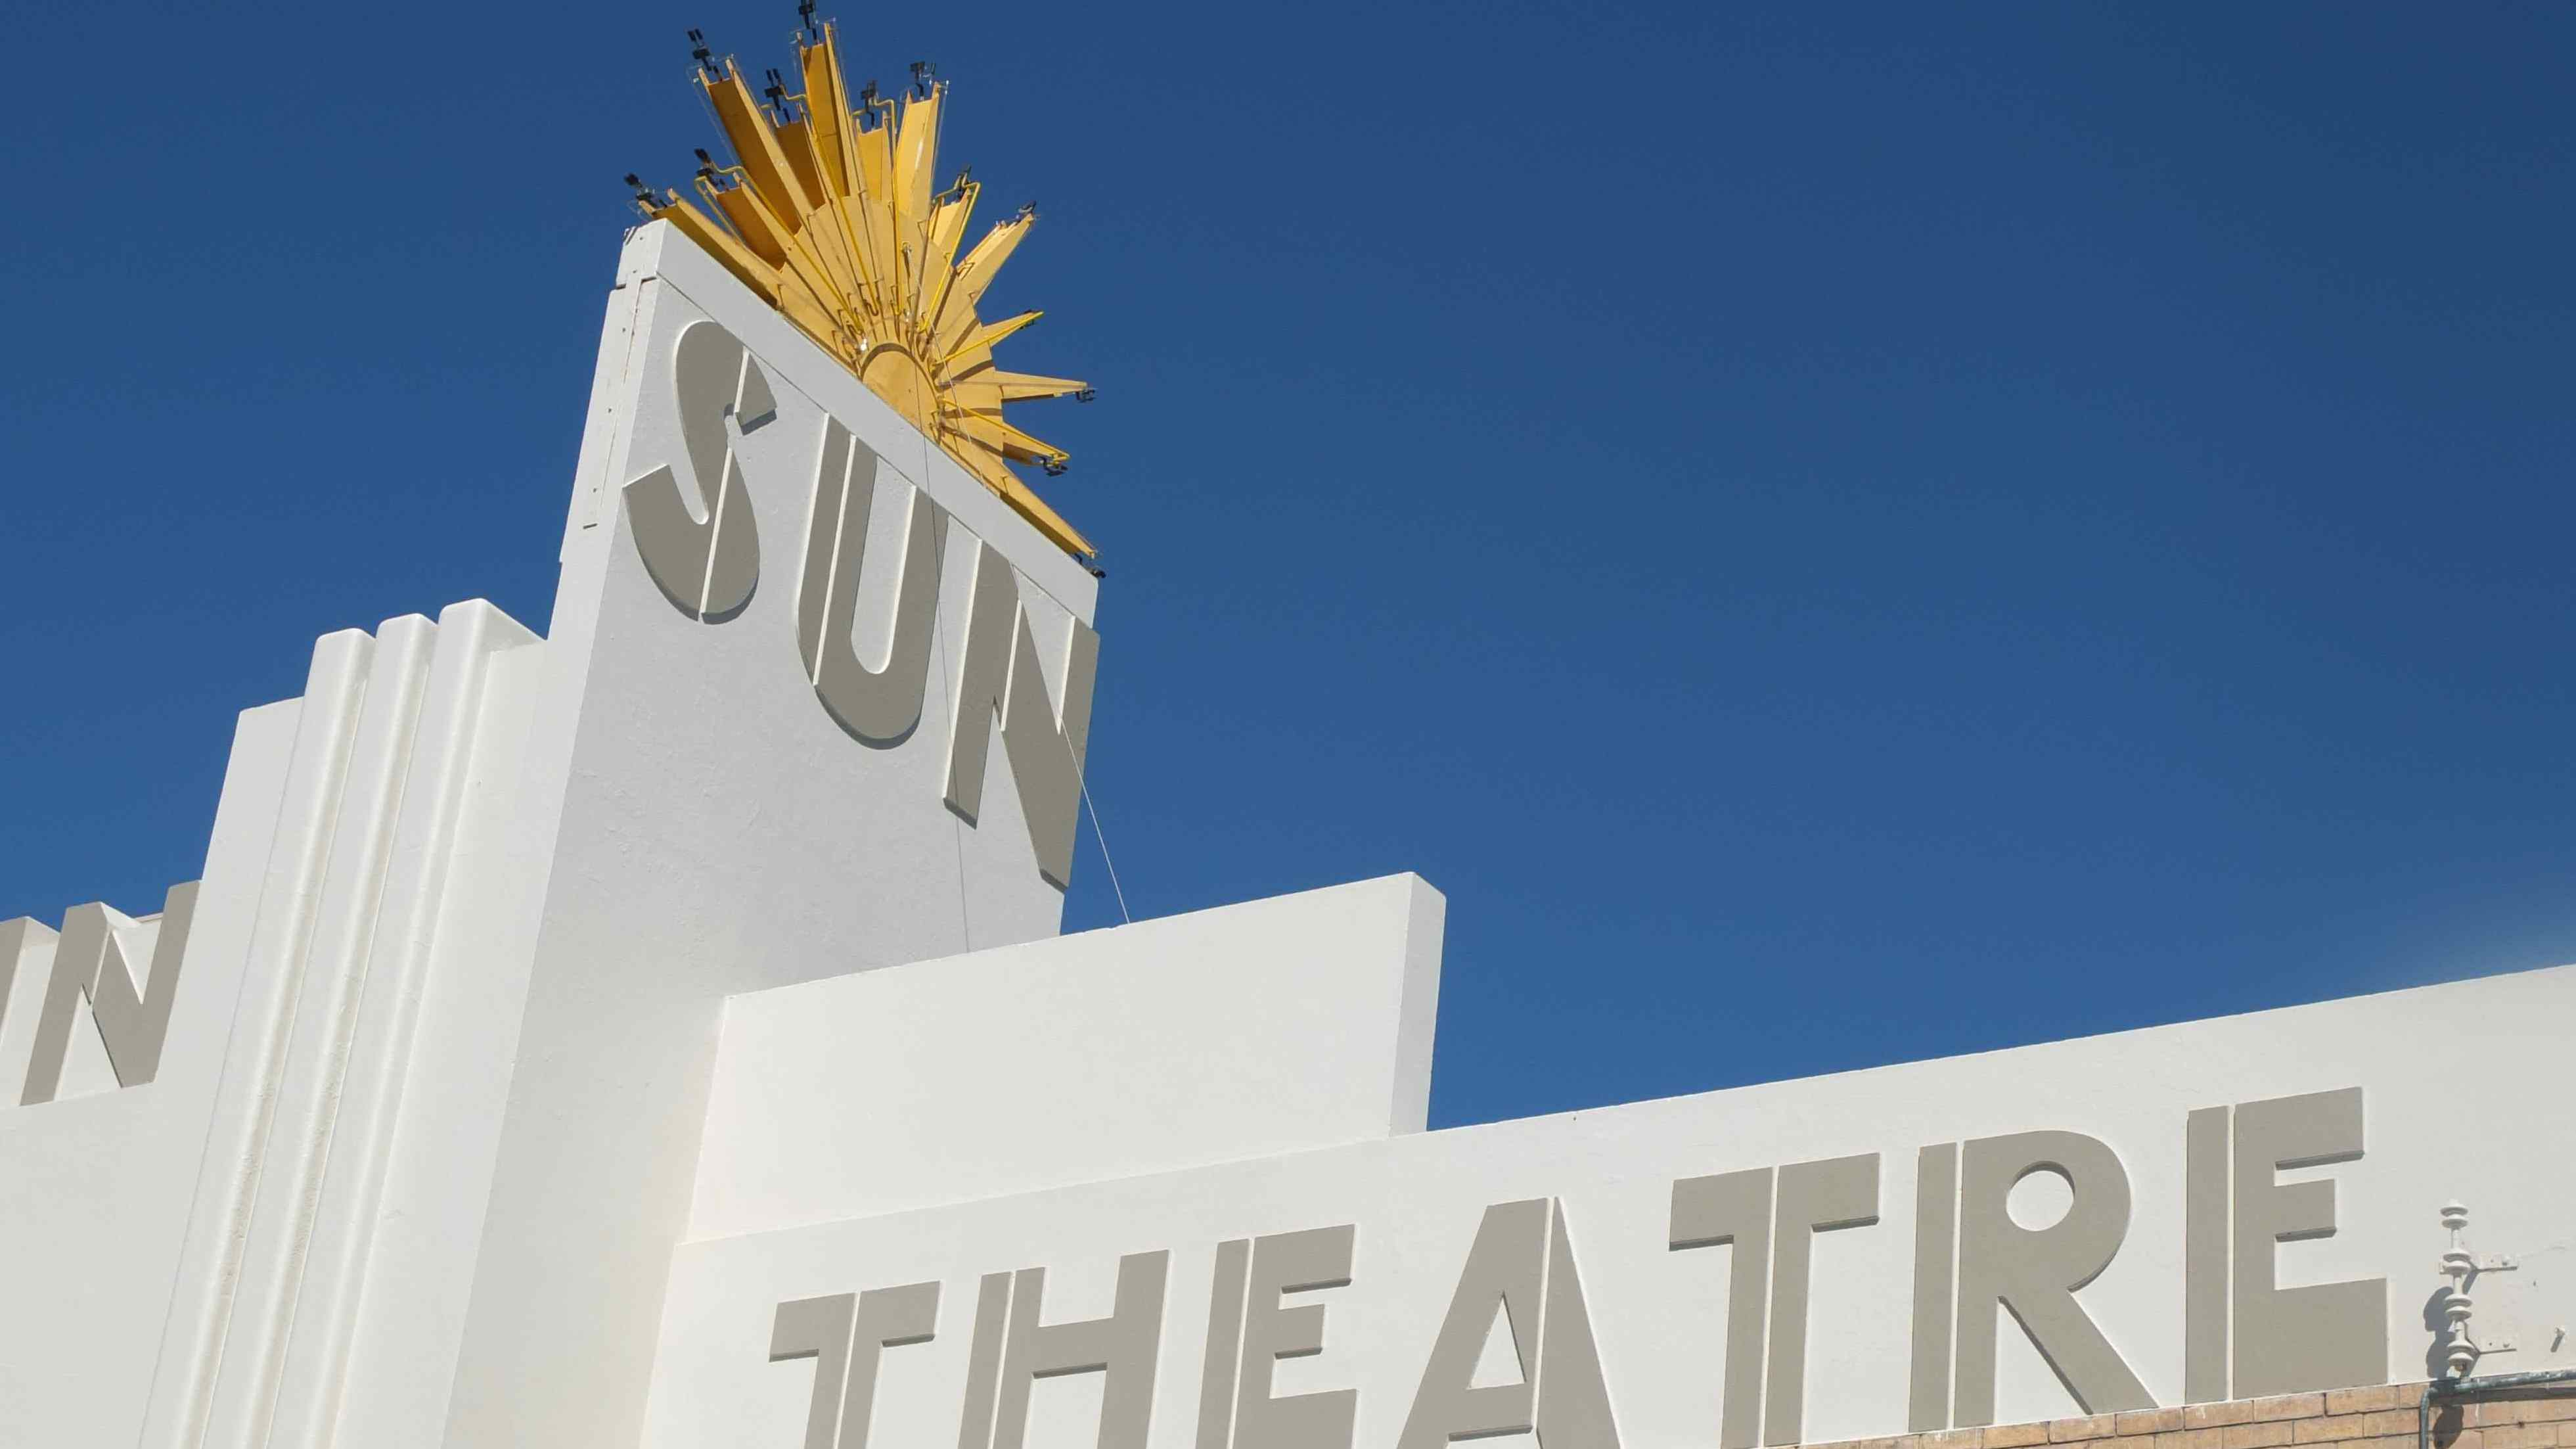 1SunTheatre 1 560x420 - 5 Ways to Enjoy Melbourne on a Budget